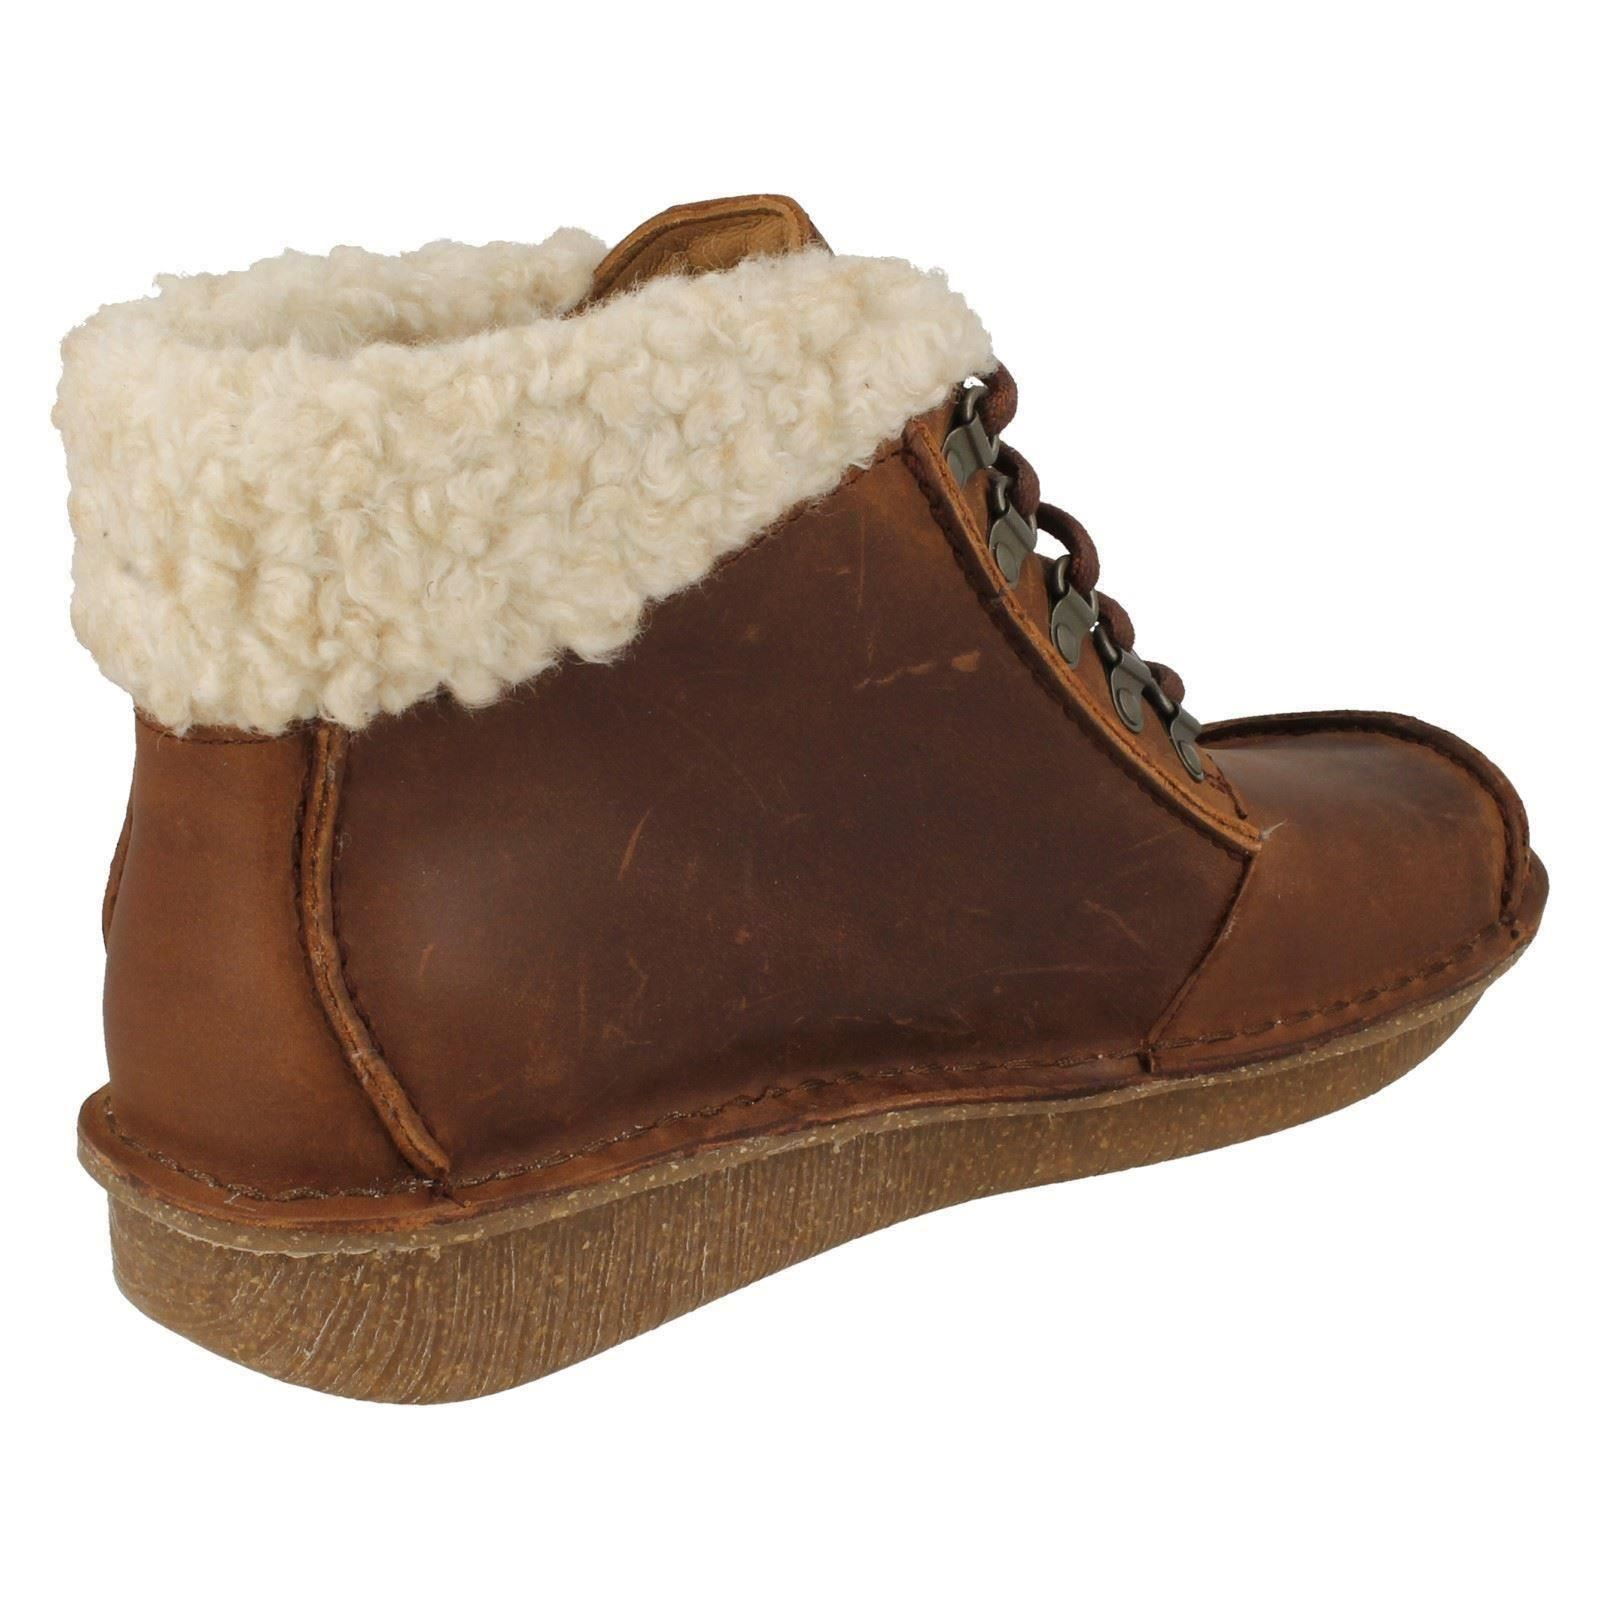 shop best sellers exclusive deals buy best Details about Clarks Ladies Fur Top Ankle Boots Funny Girl